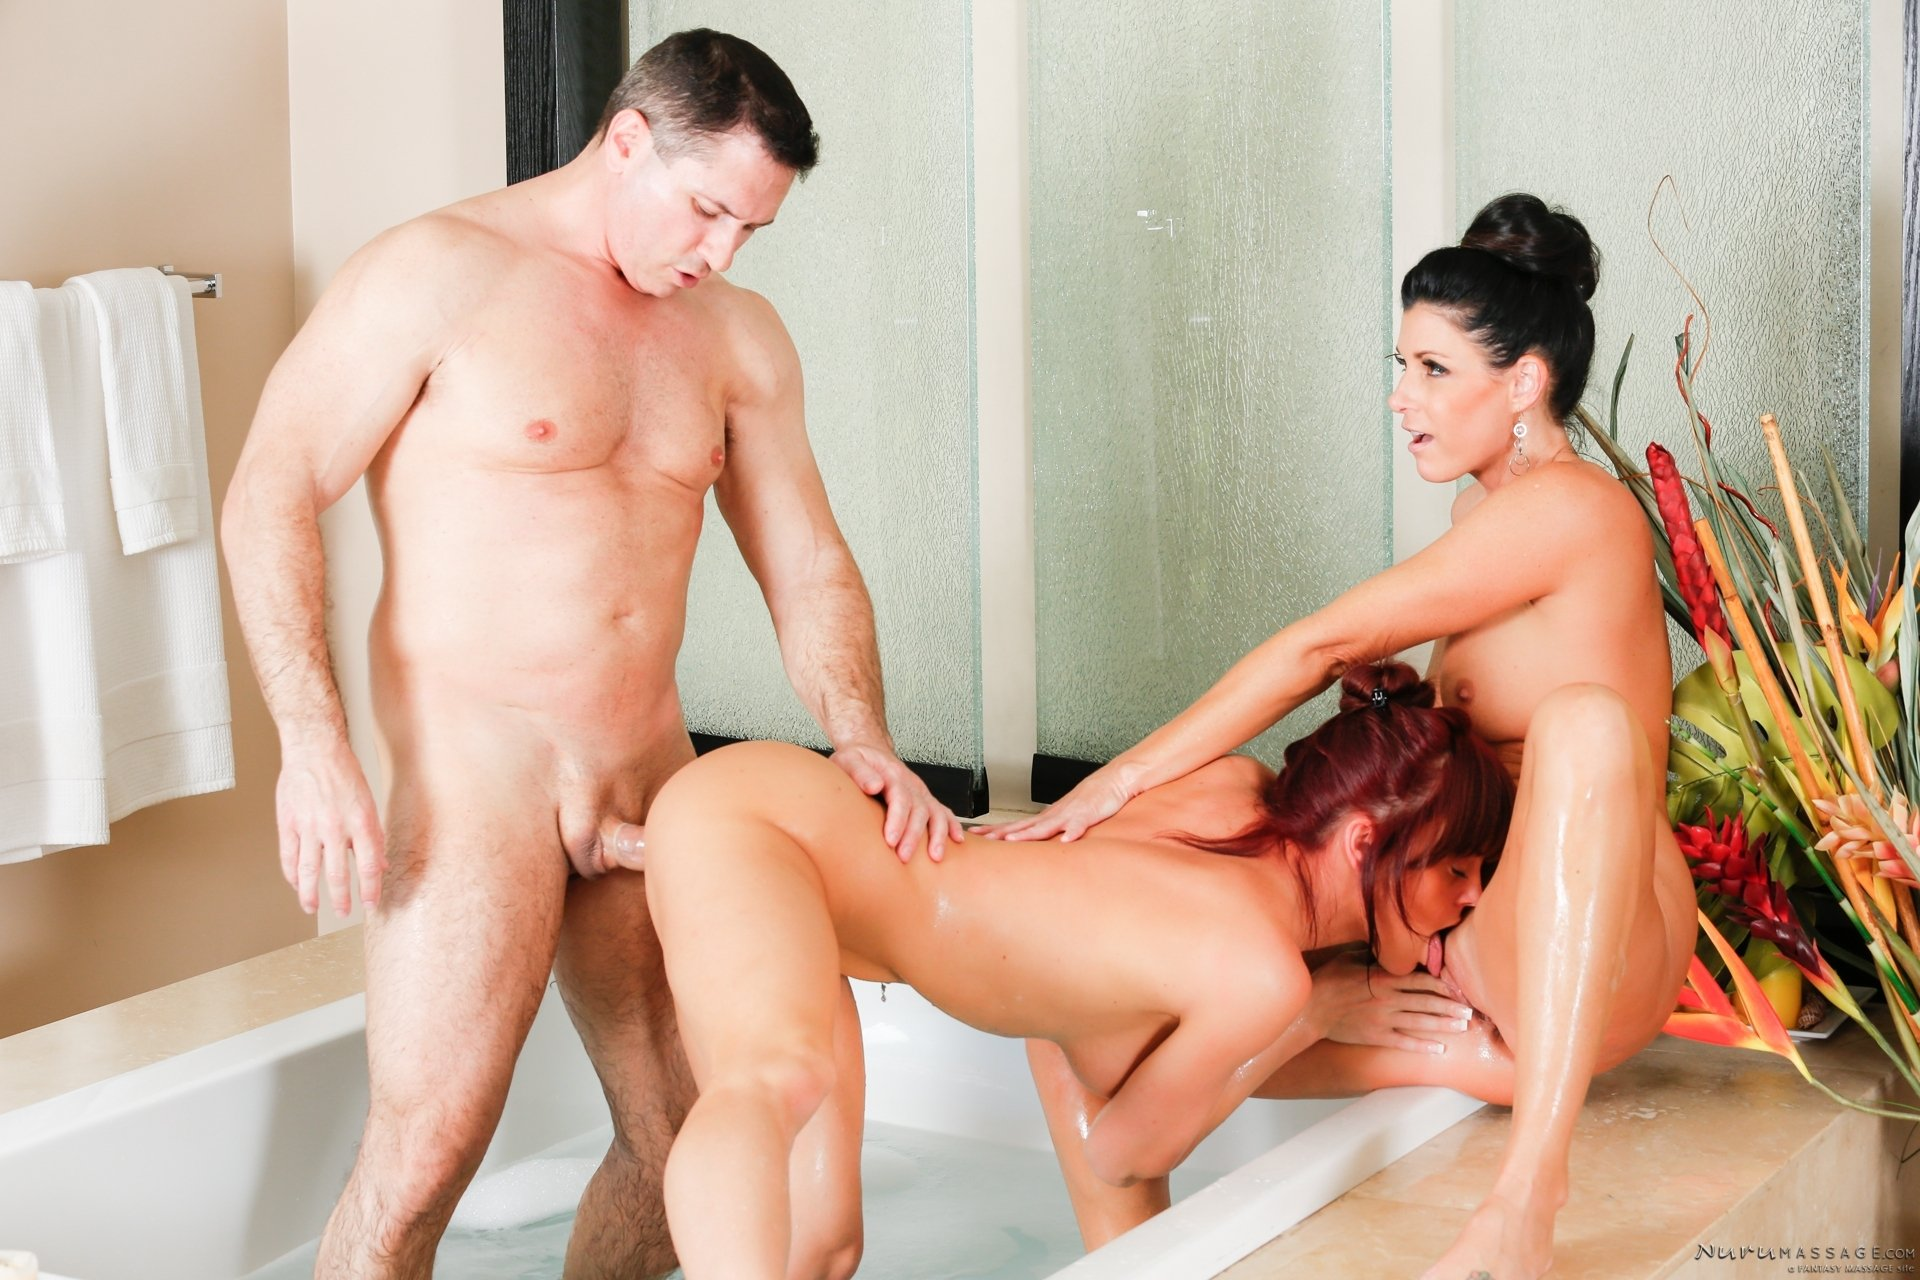 Doctor touching boobs Crazy Leaking Tits!